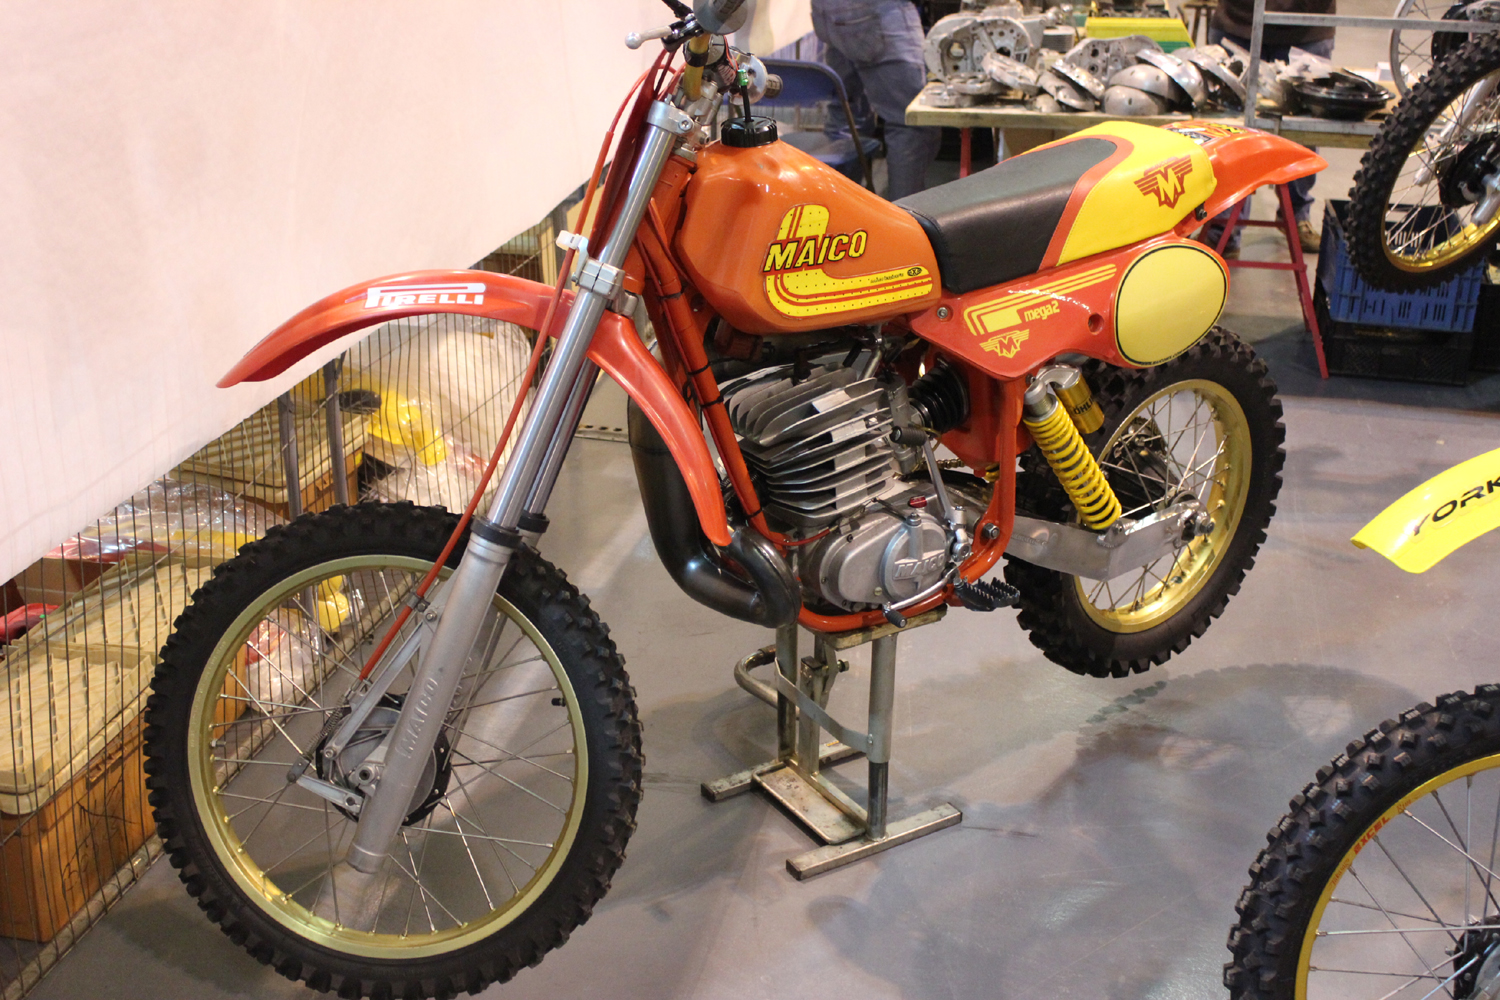 classicdirtbikerider.com-photo by Mr J-2015 Telford classic dirt bike show-MAICO MEGA 2